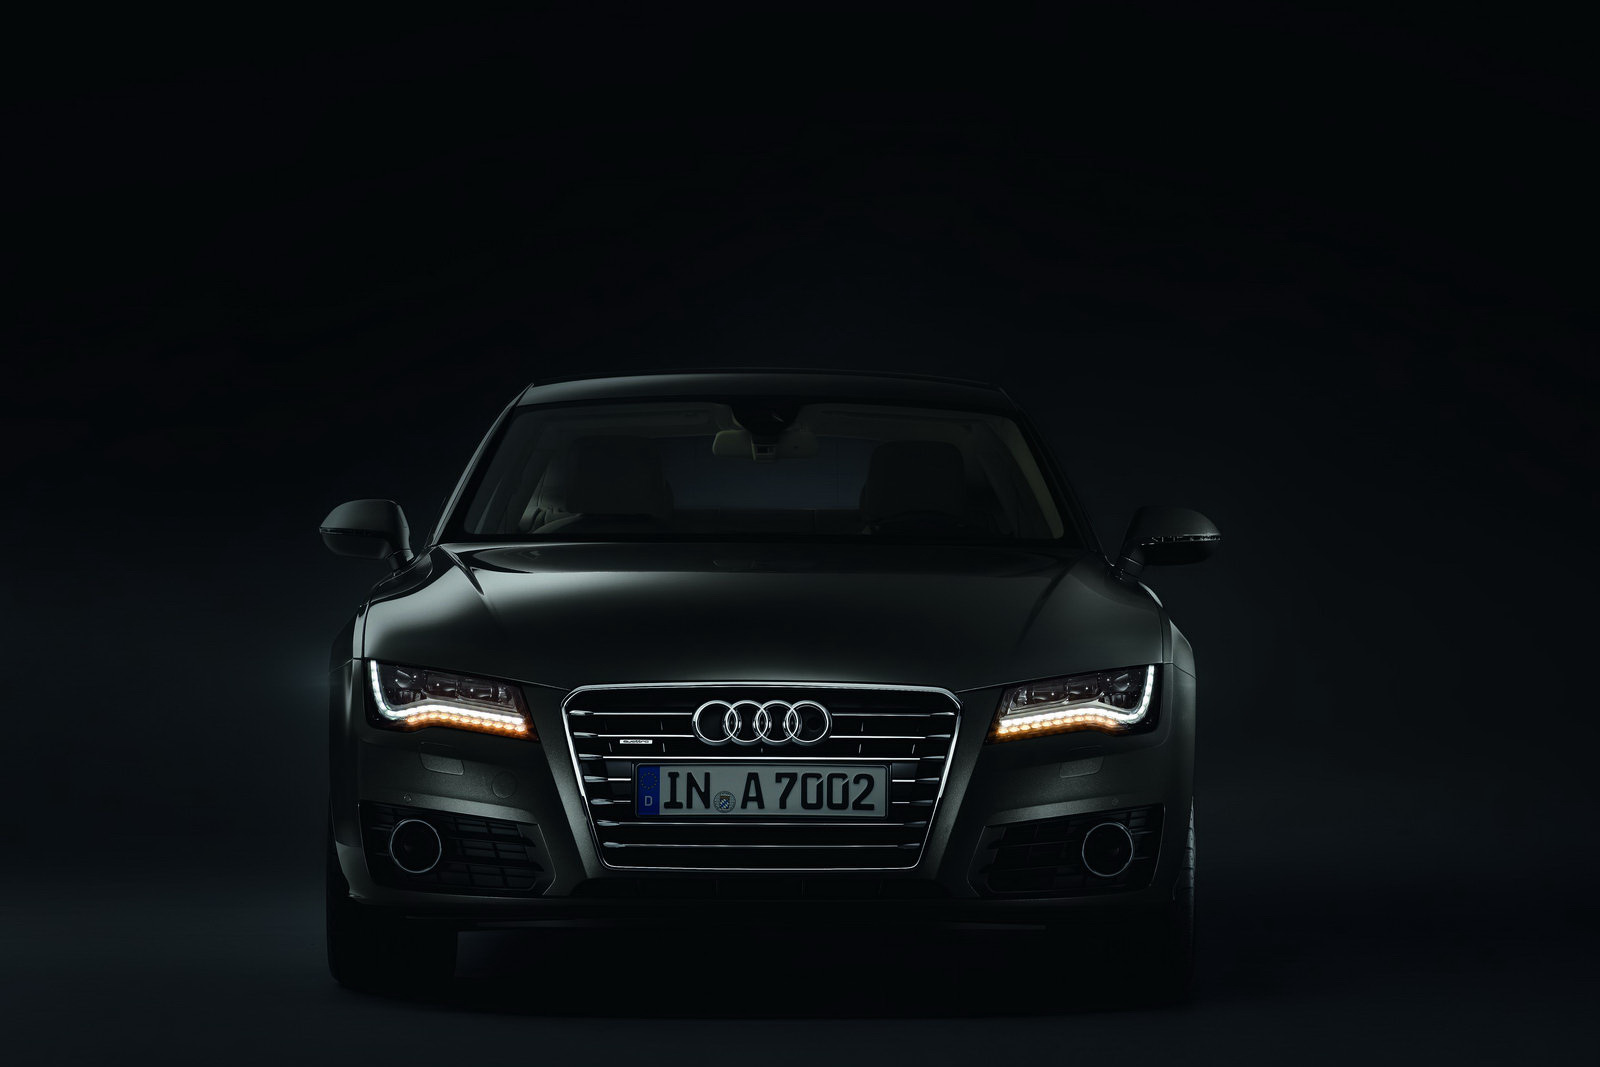 Audi A7 Sportback 19 New Audi A7 Sportback Details Announced Along With 106 High Res Photos